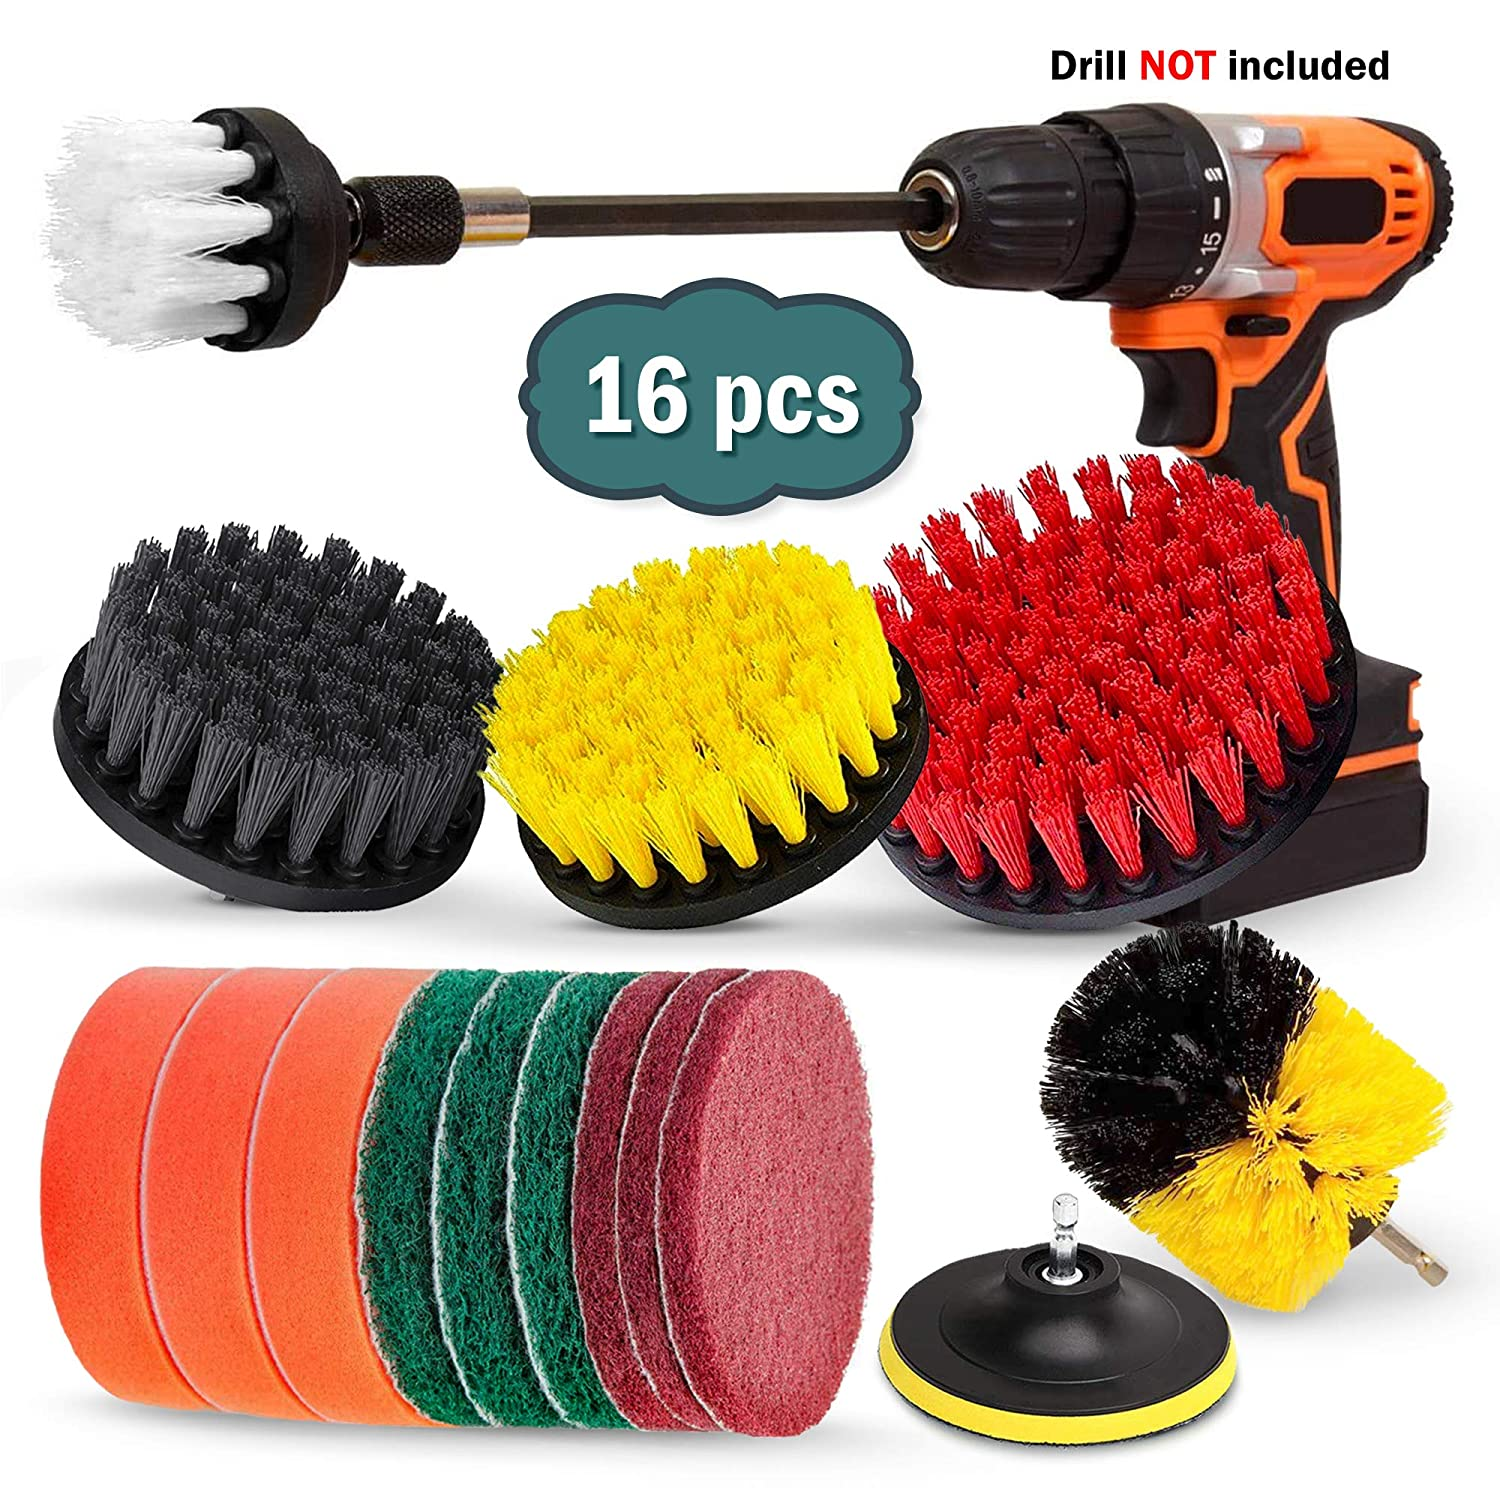 Buddy Pro 16 Piece Drill Brush Set, Extend Long Attachment, Scrub Pads, Sponge, Power Scrubber Cleaning Kit for Grout, Tile, Carpet, Sink, Bathtub, Bathroom, Shower, Tub, Kitchen, Car, Pool, Boat